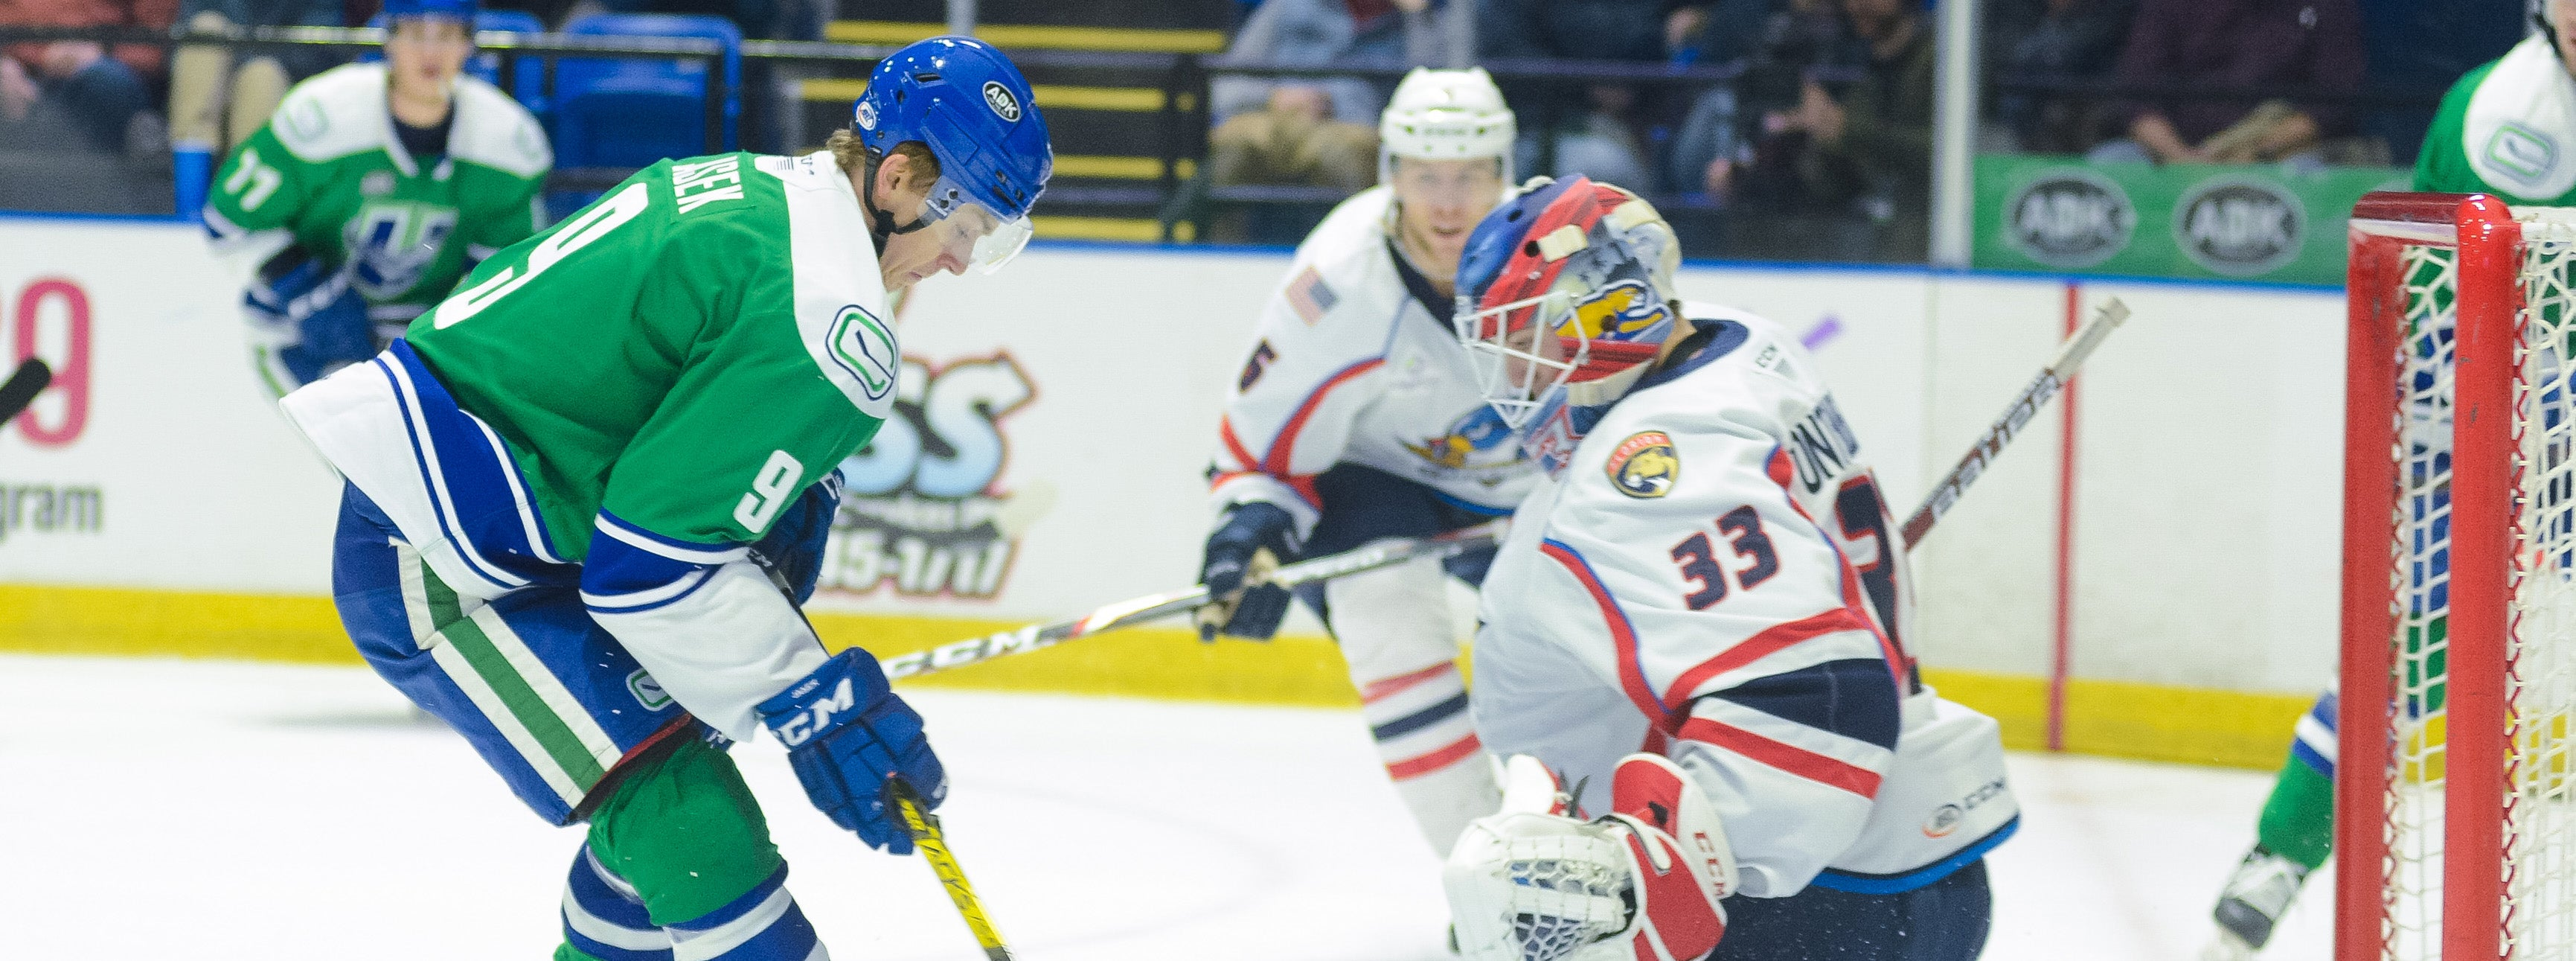 COMETS POINT STREAK SNAPPED BY SPRINGFIELD